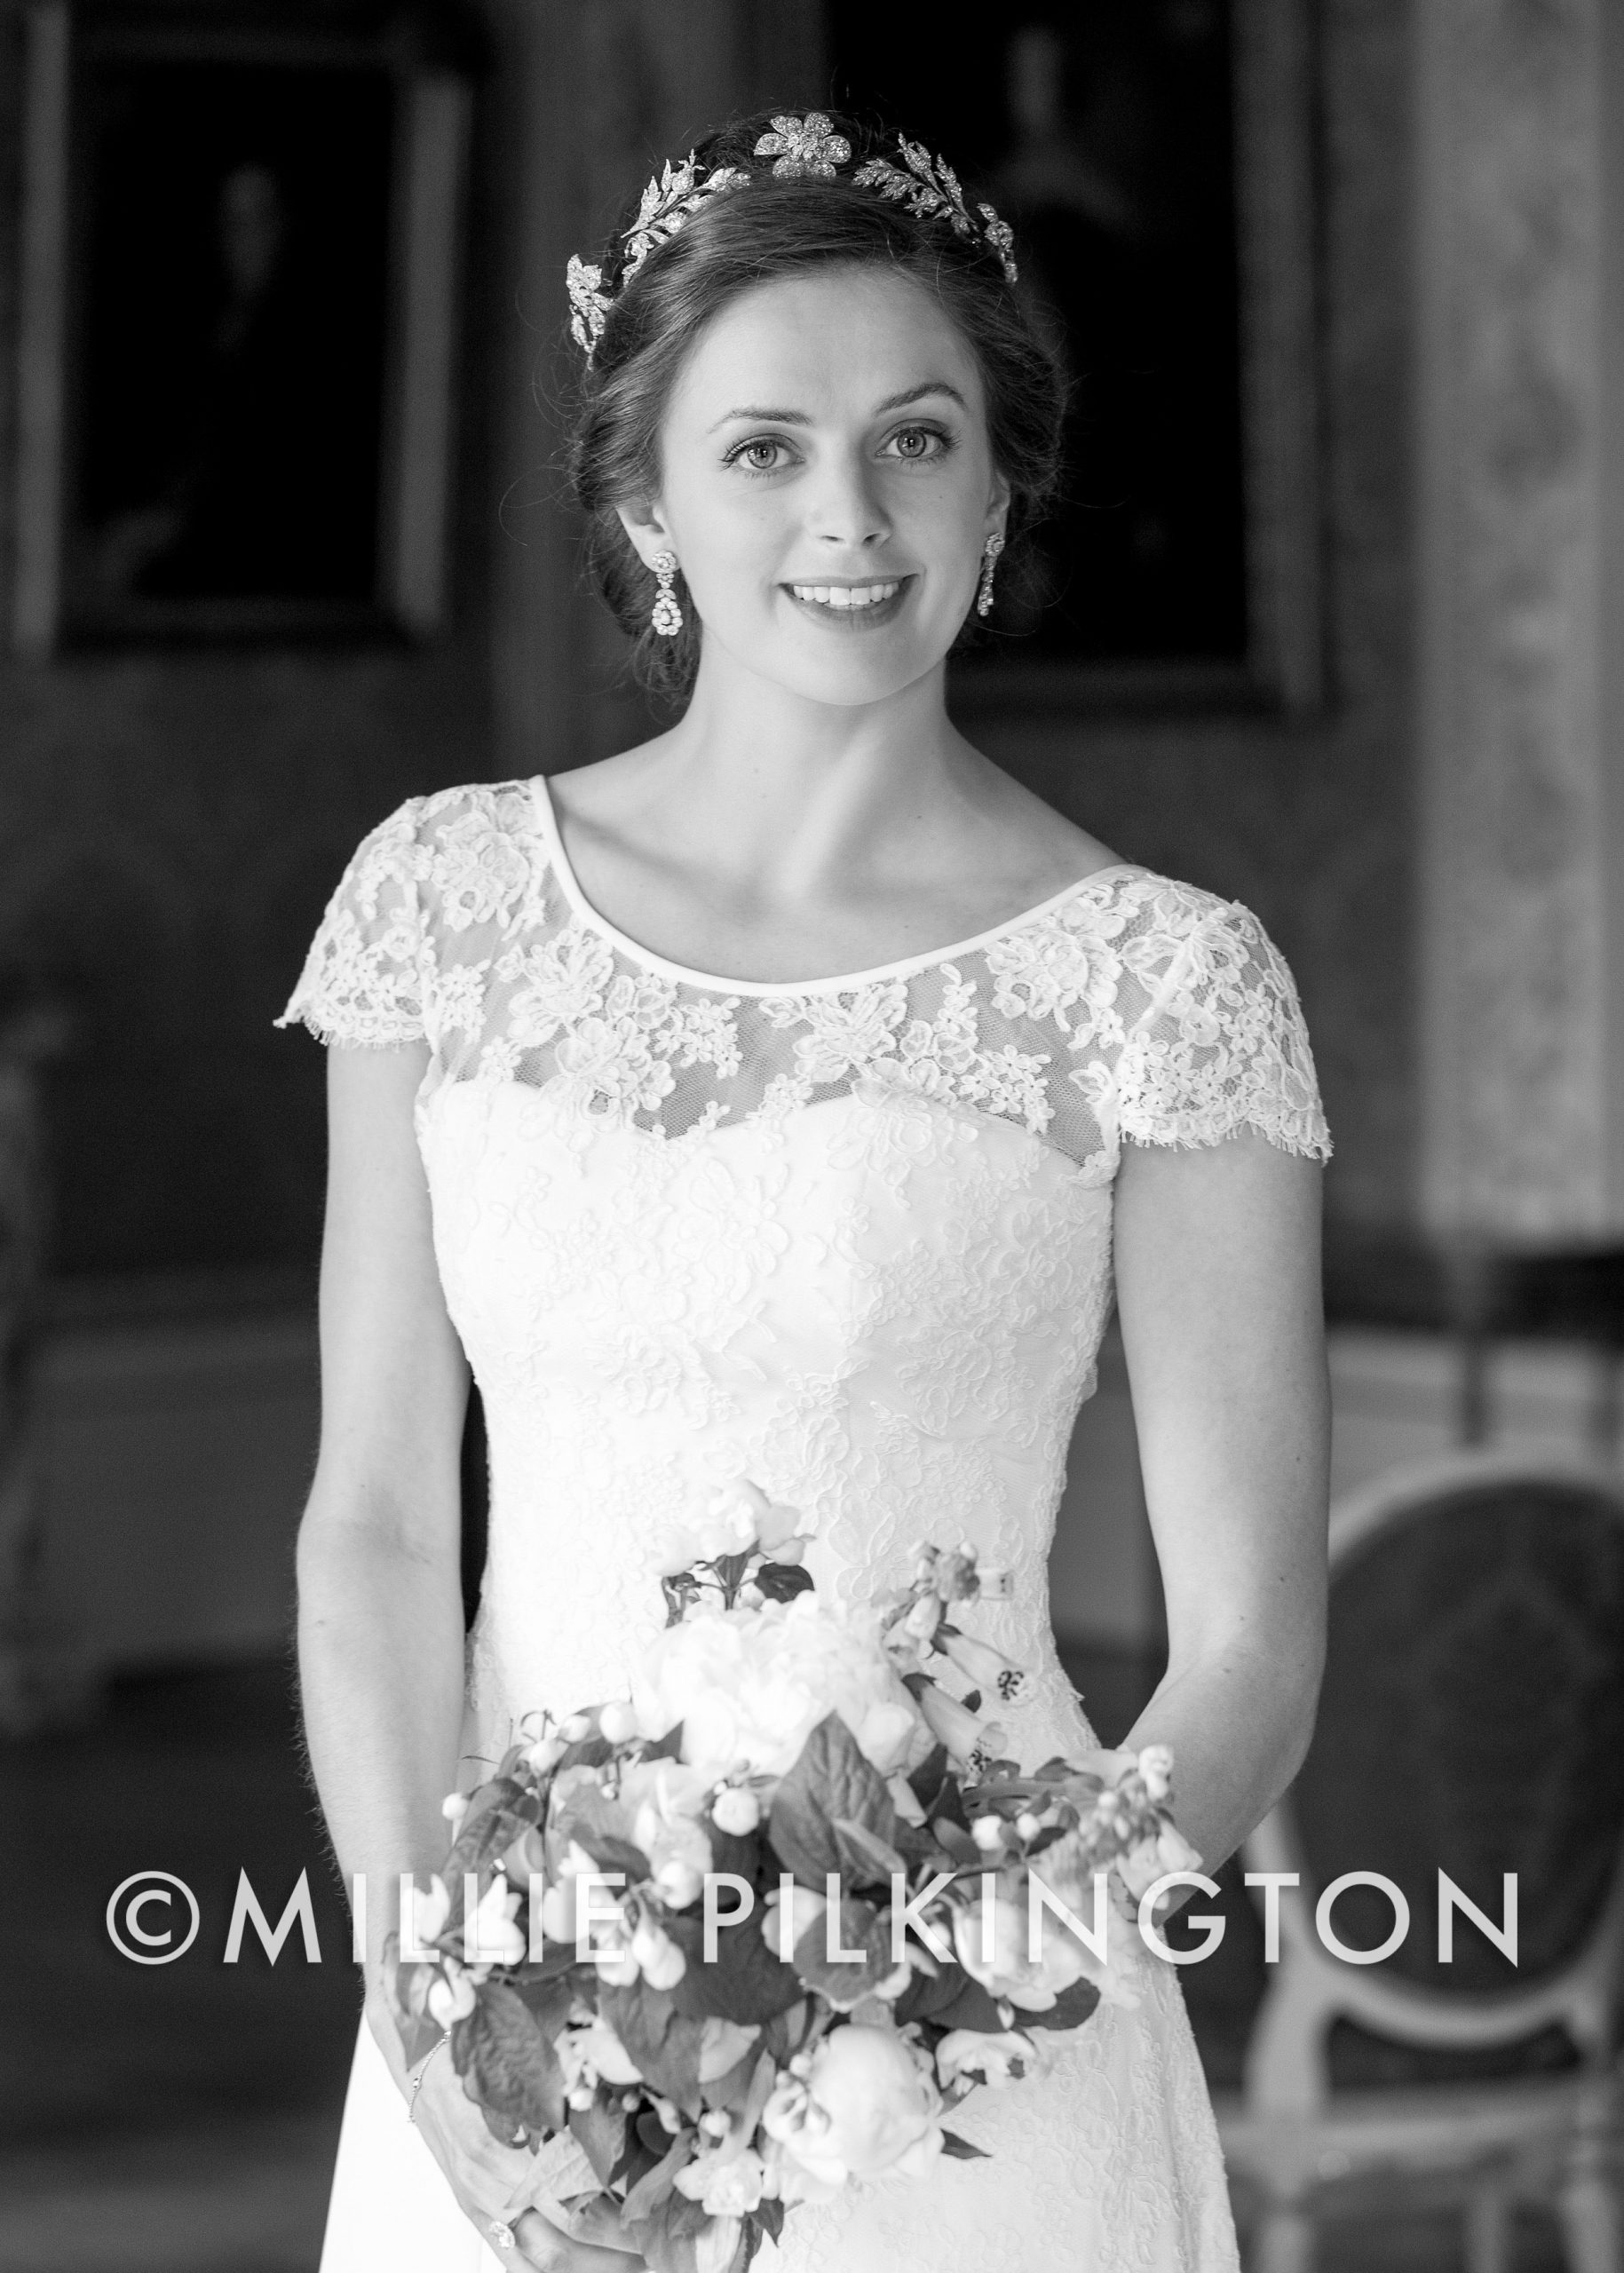 Wedding photography in Hertfordshire